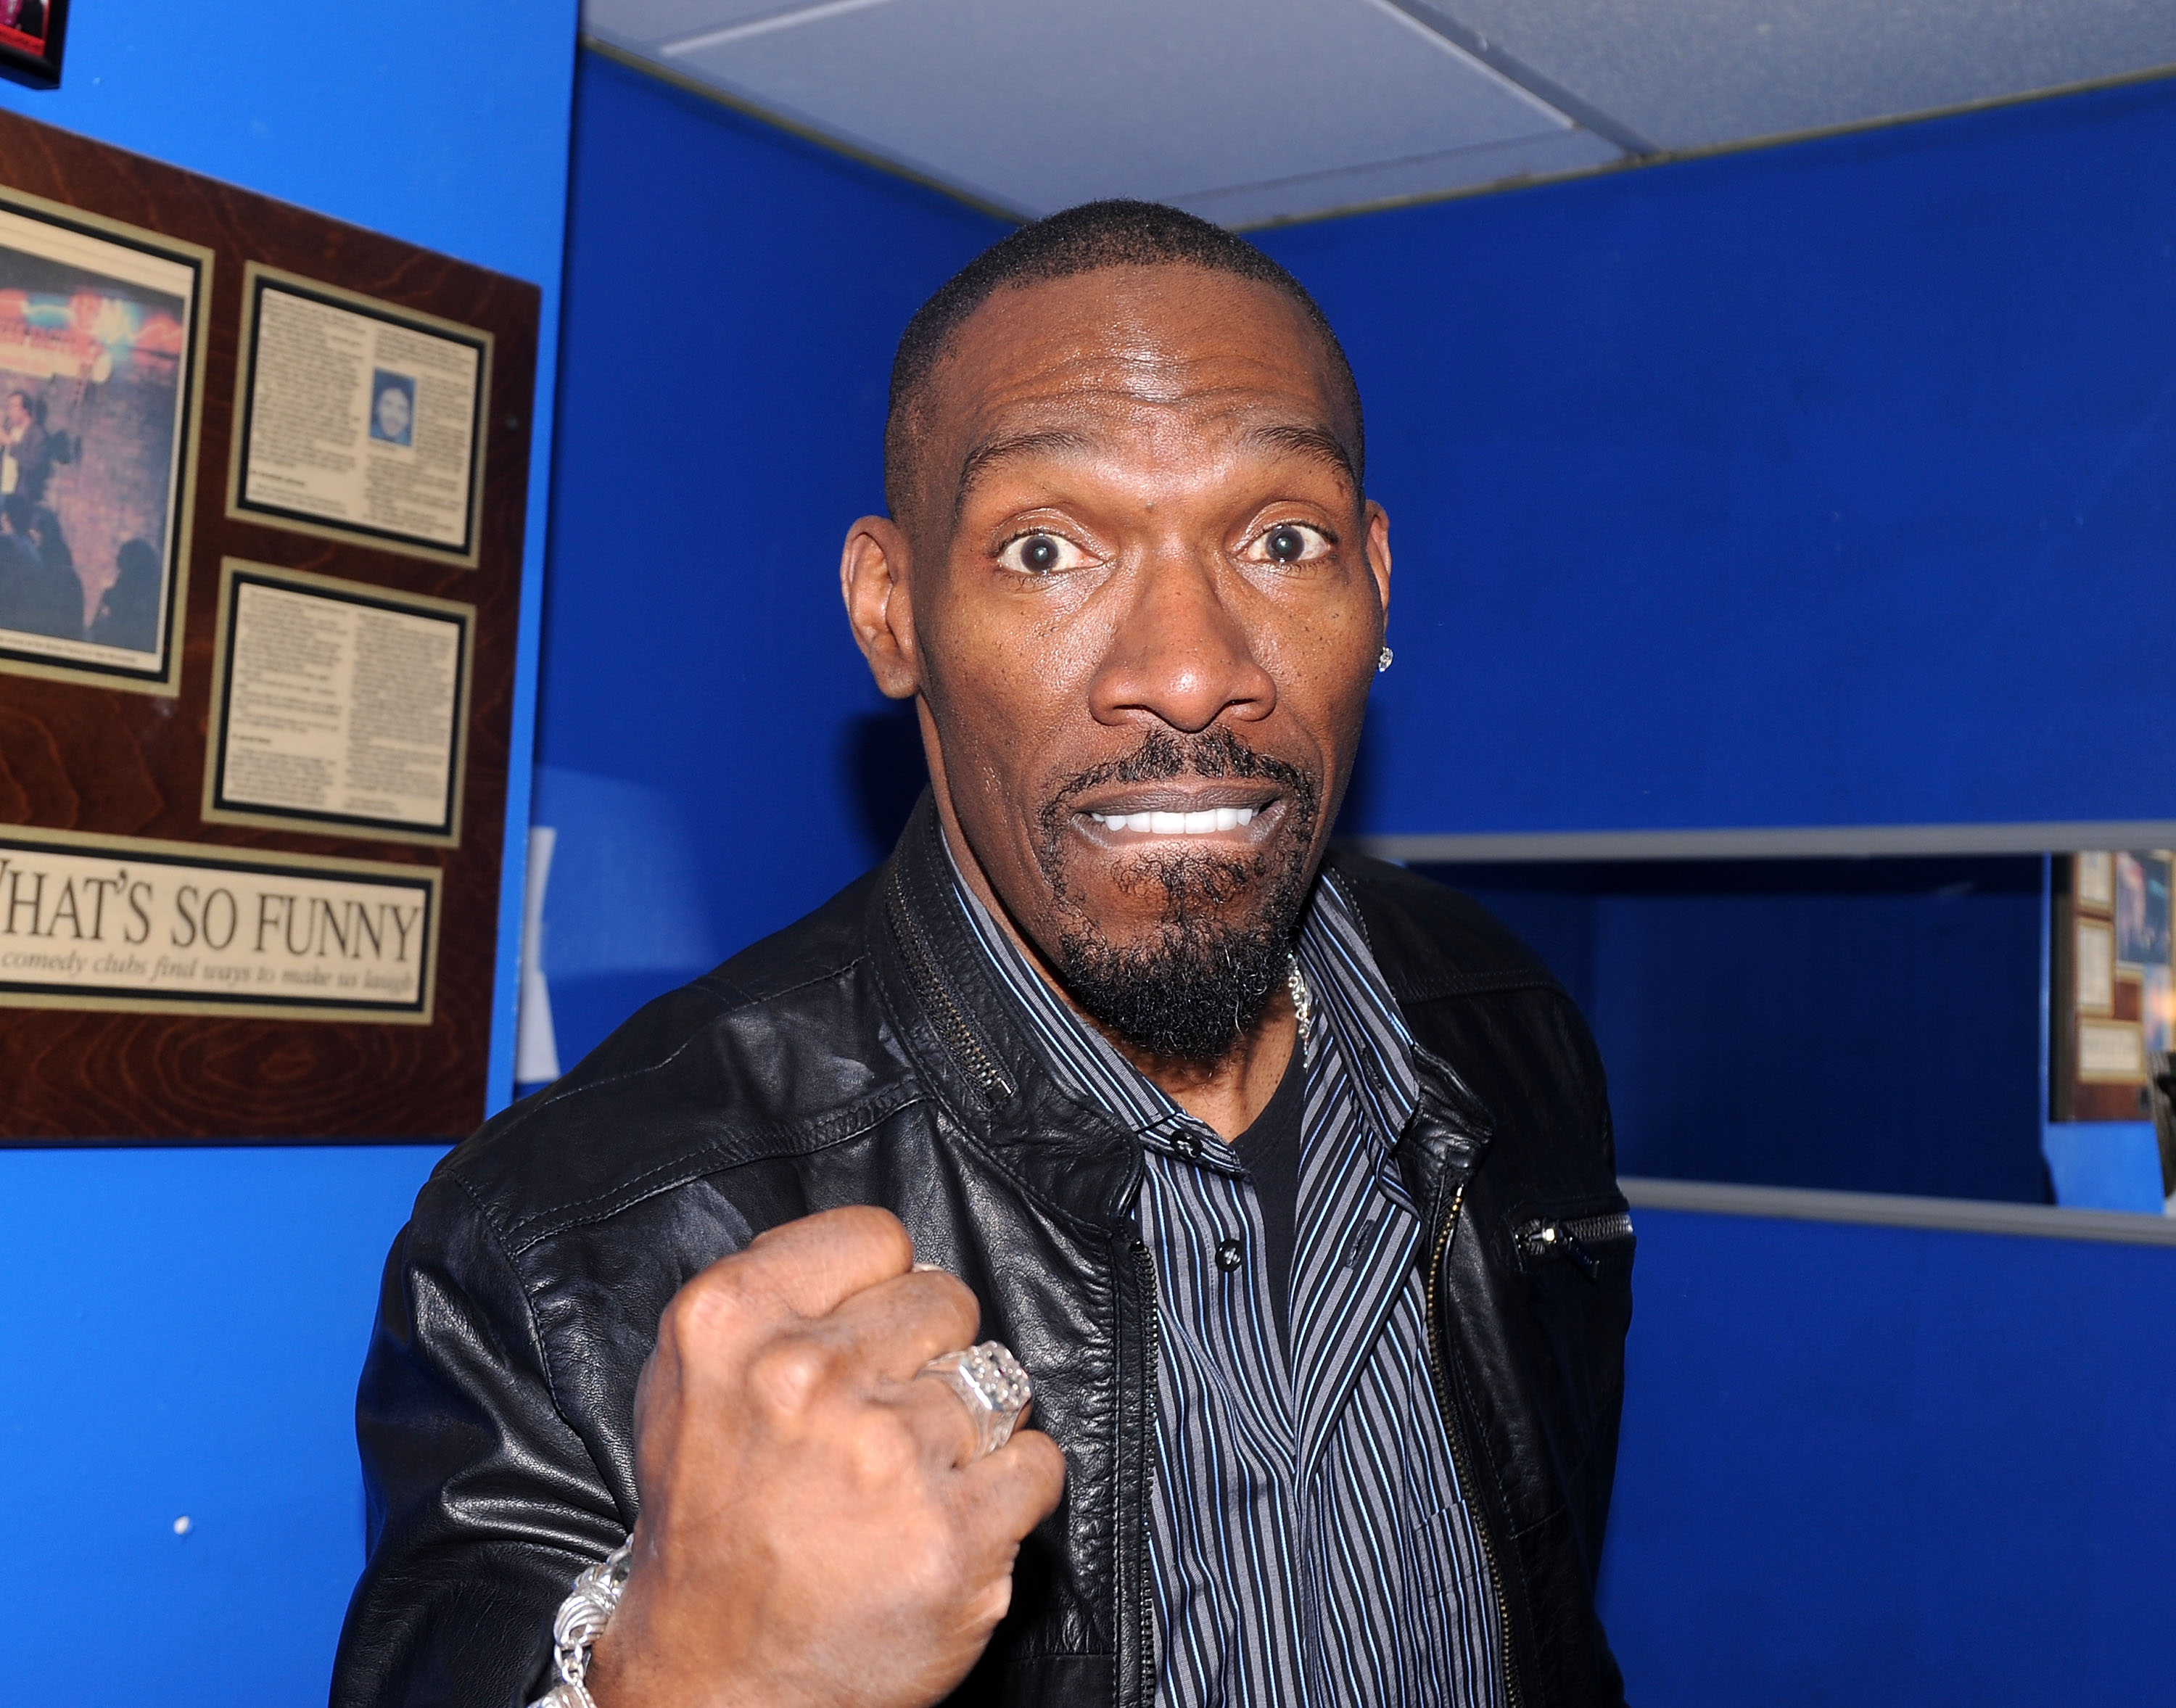 Comedian Charlie Murphy Performs At Stress Factory Comedy Club